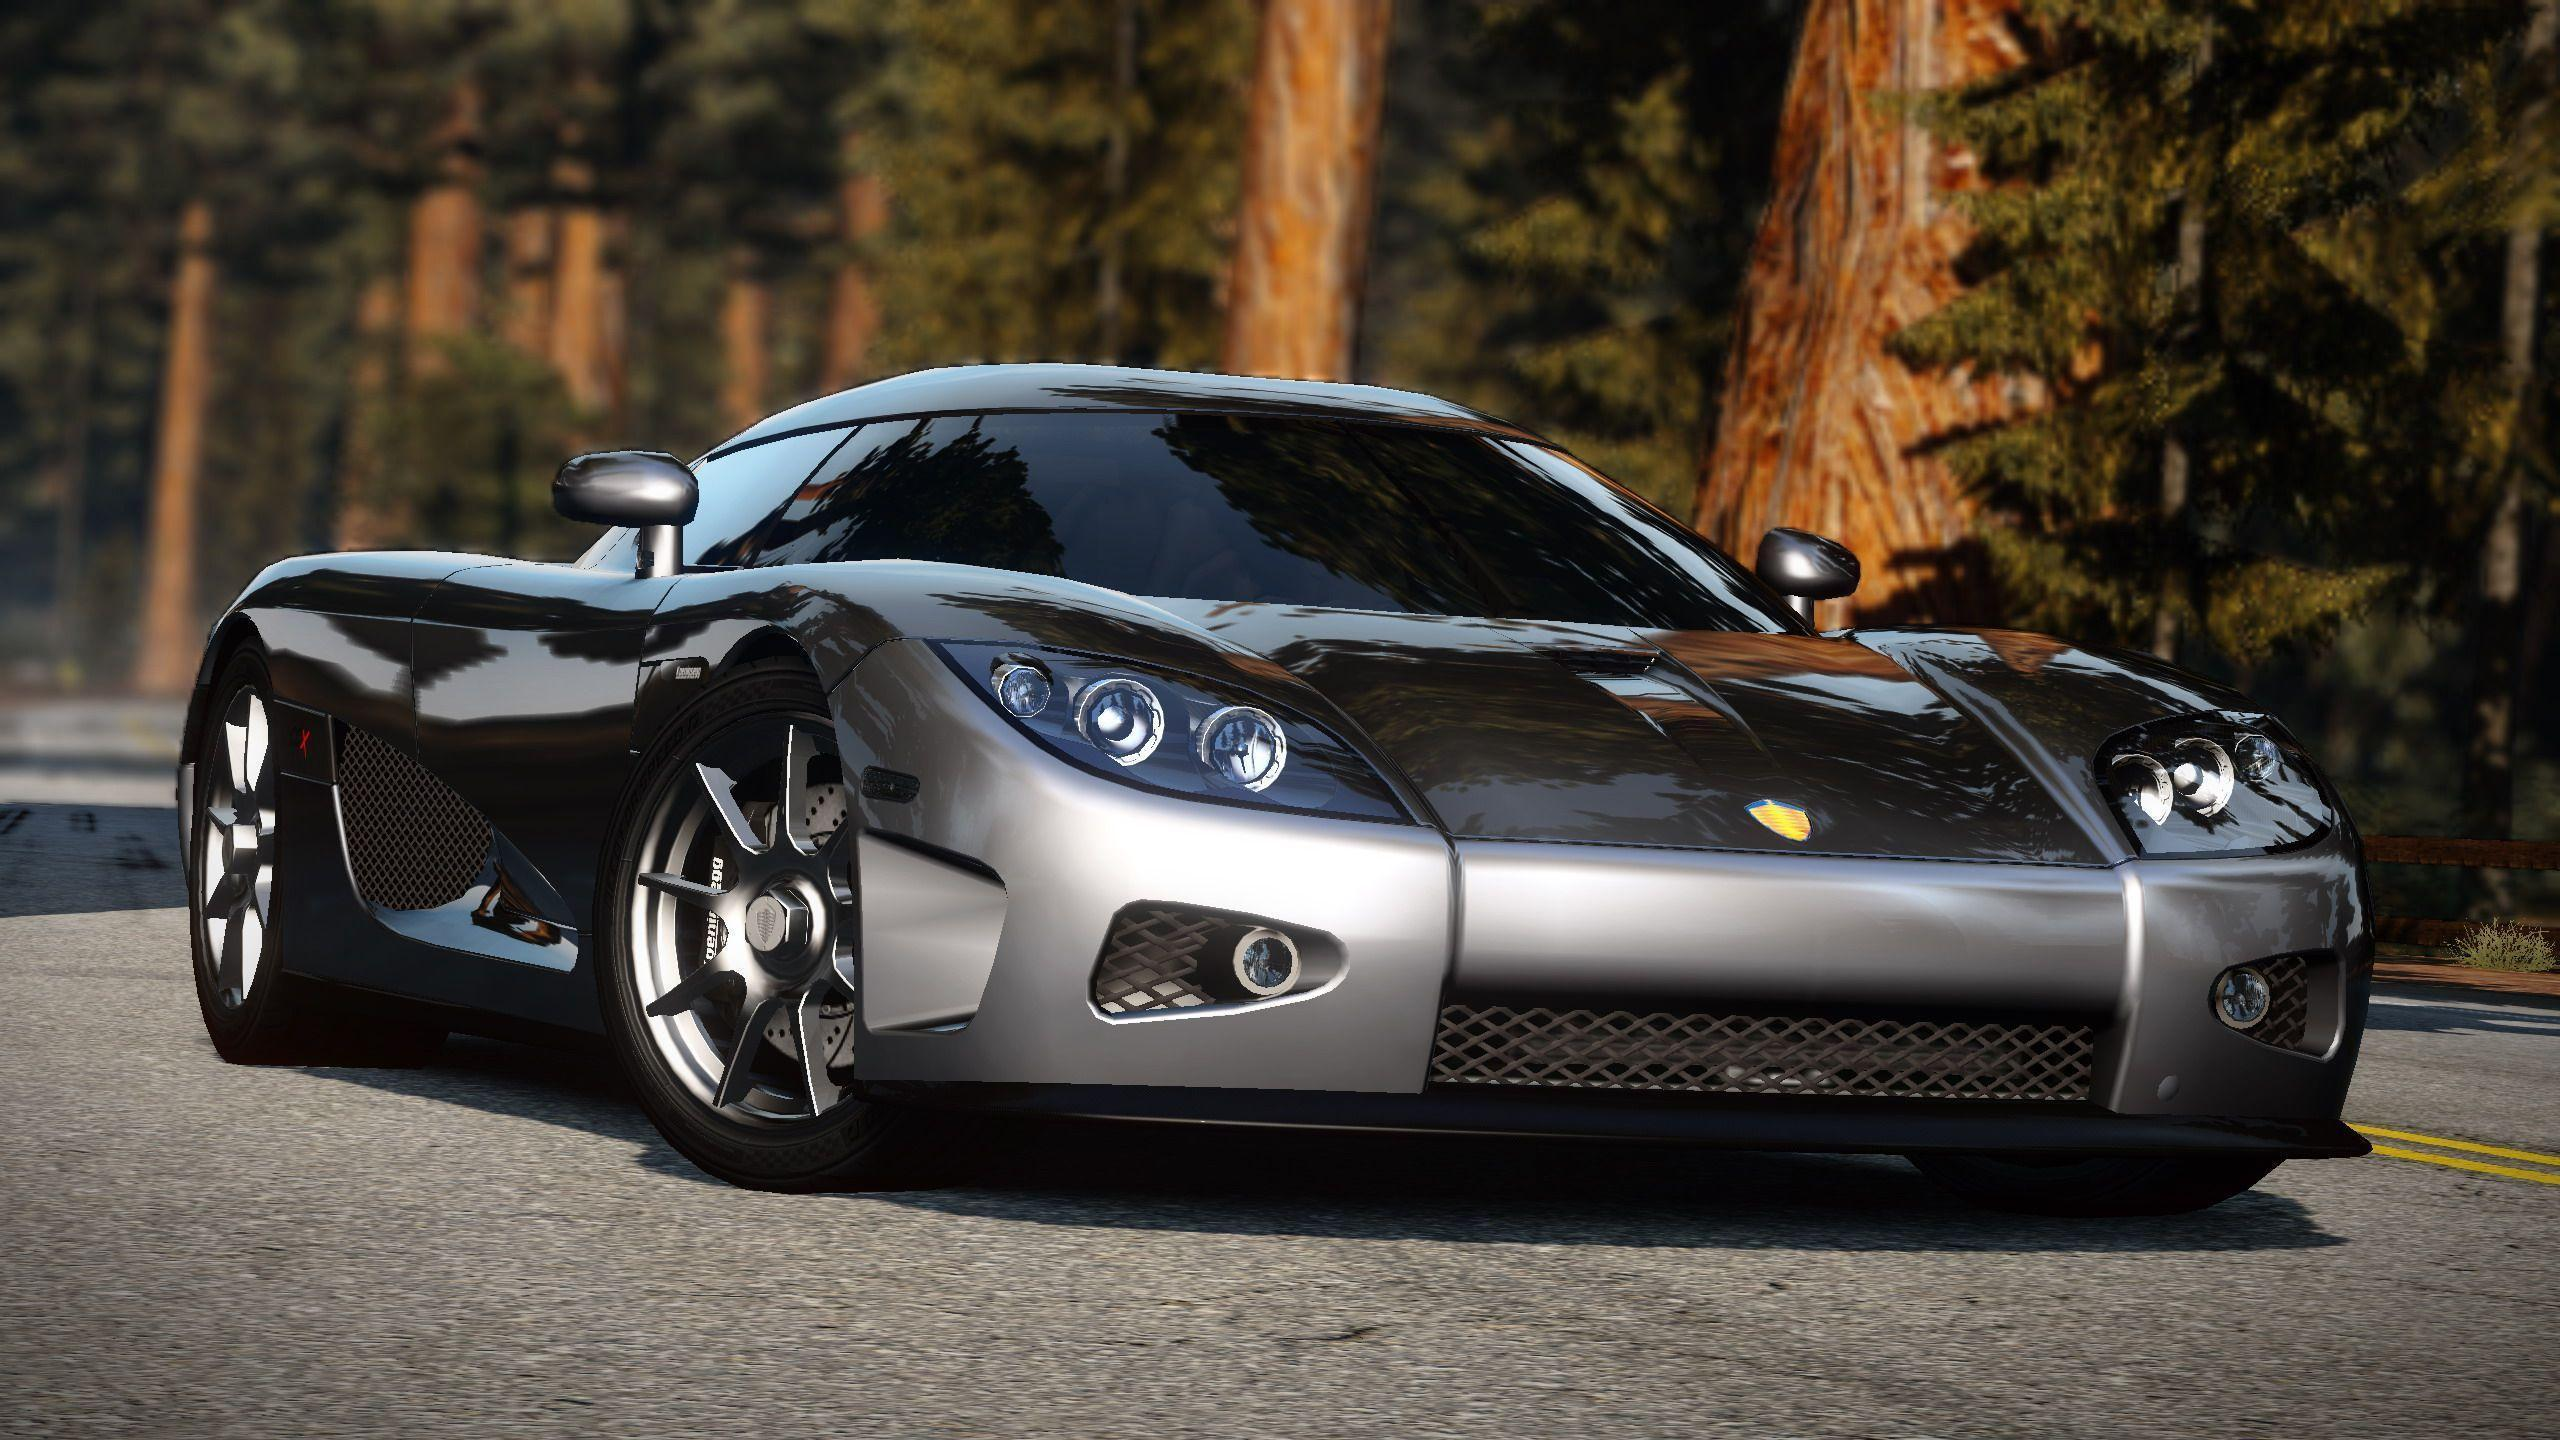 Koenigsegg CCXR 2016 Wallpaper Backgrounds